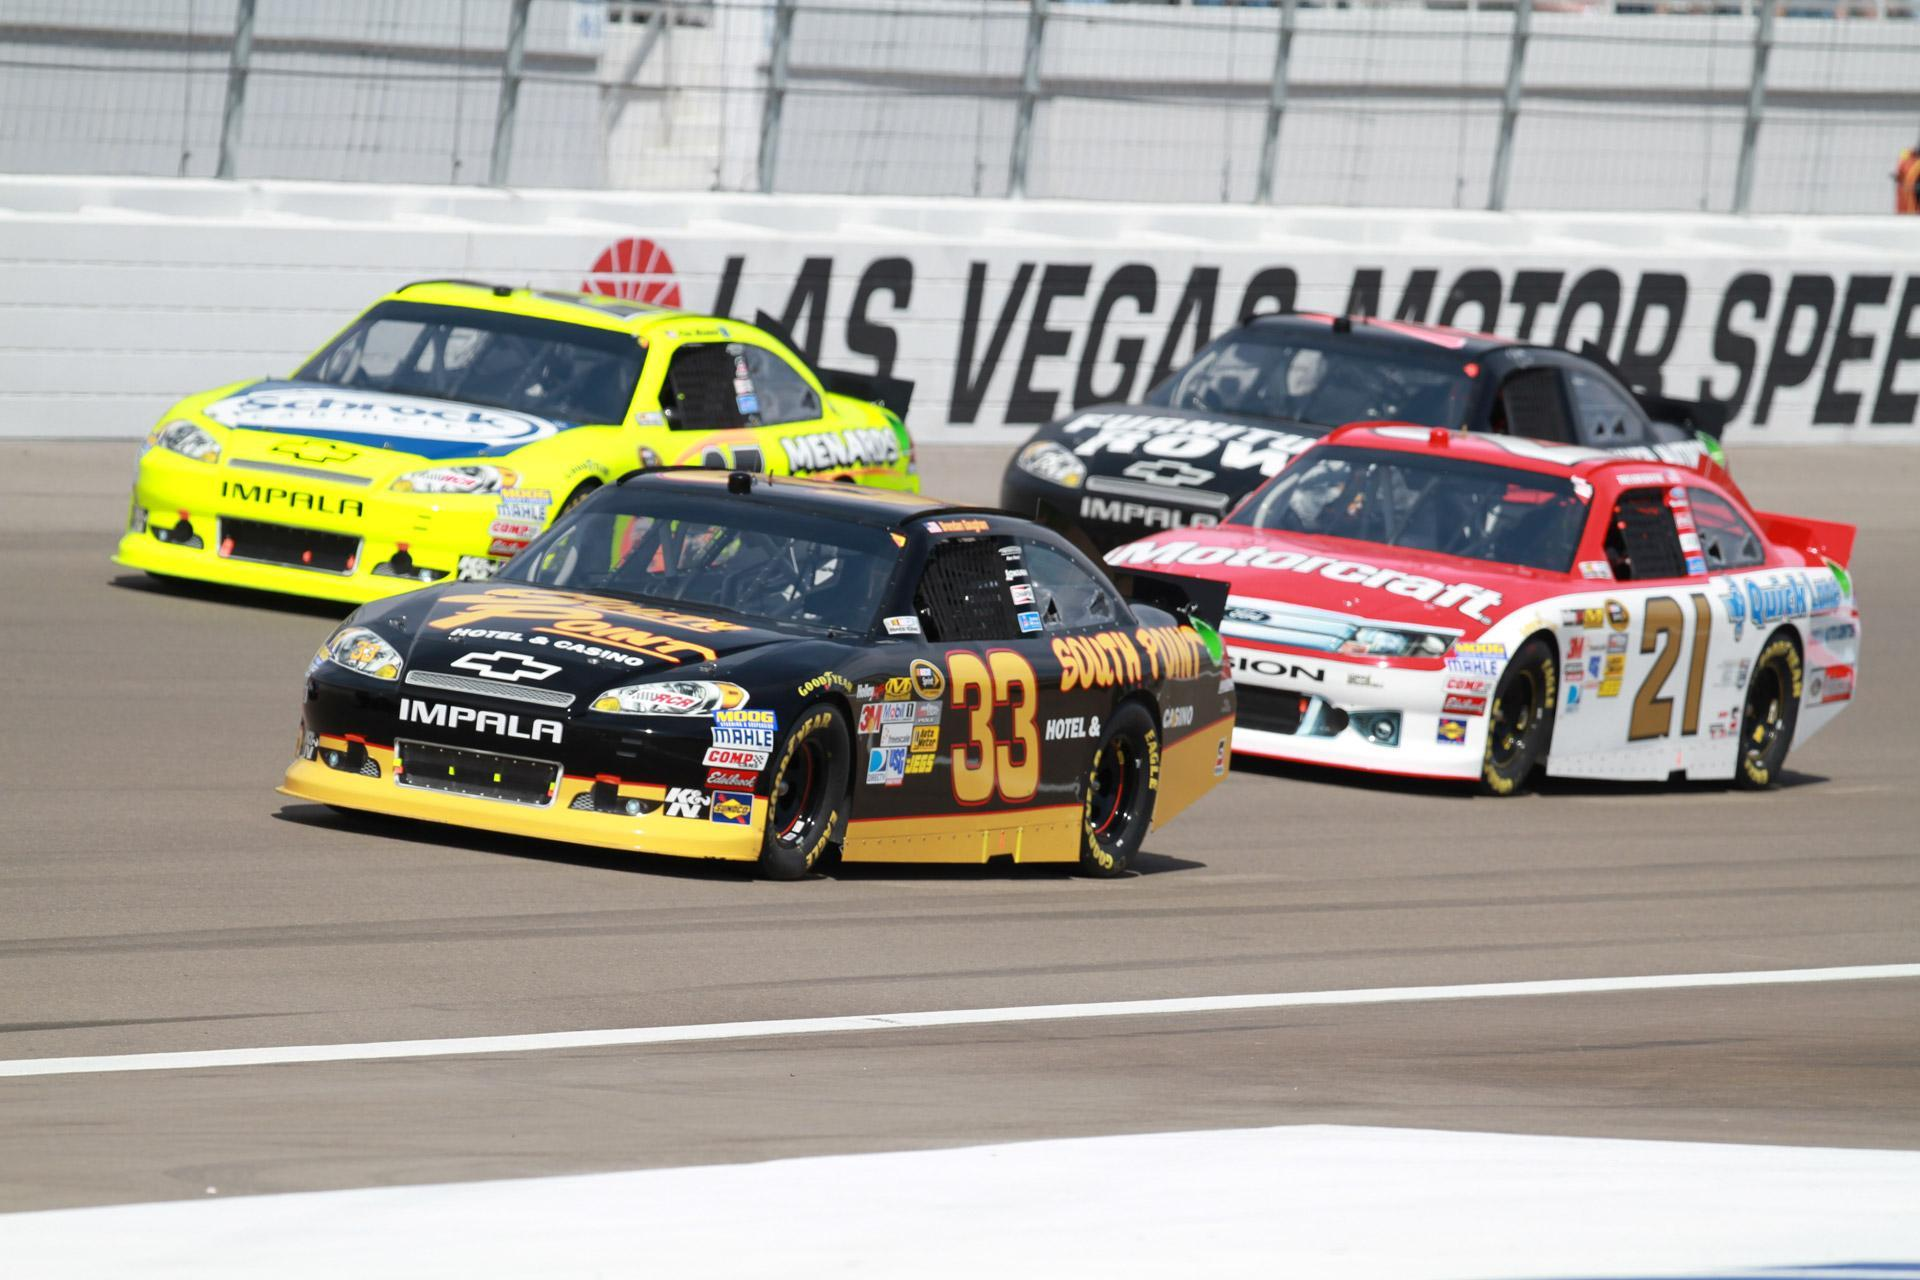 NASCAR racers compete